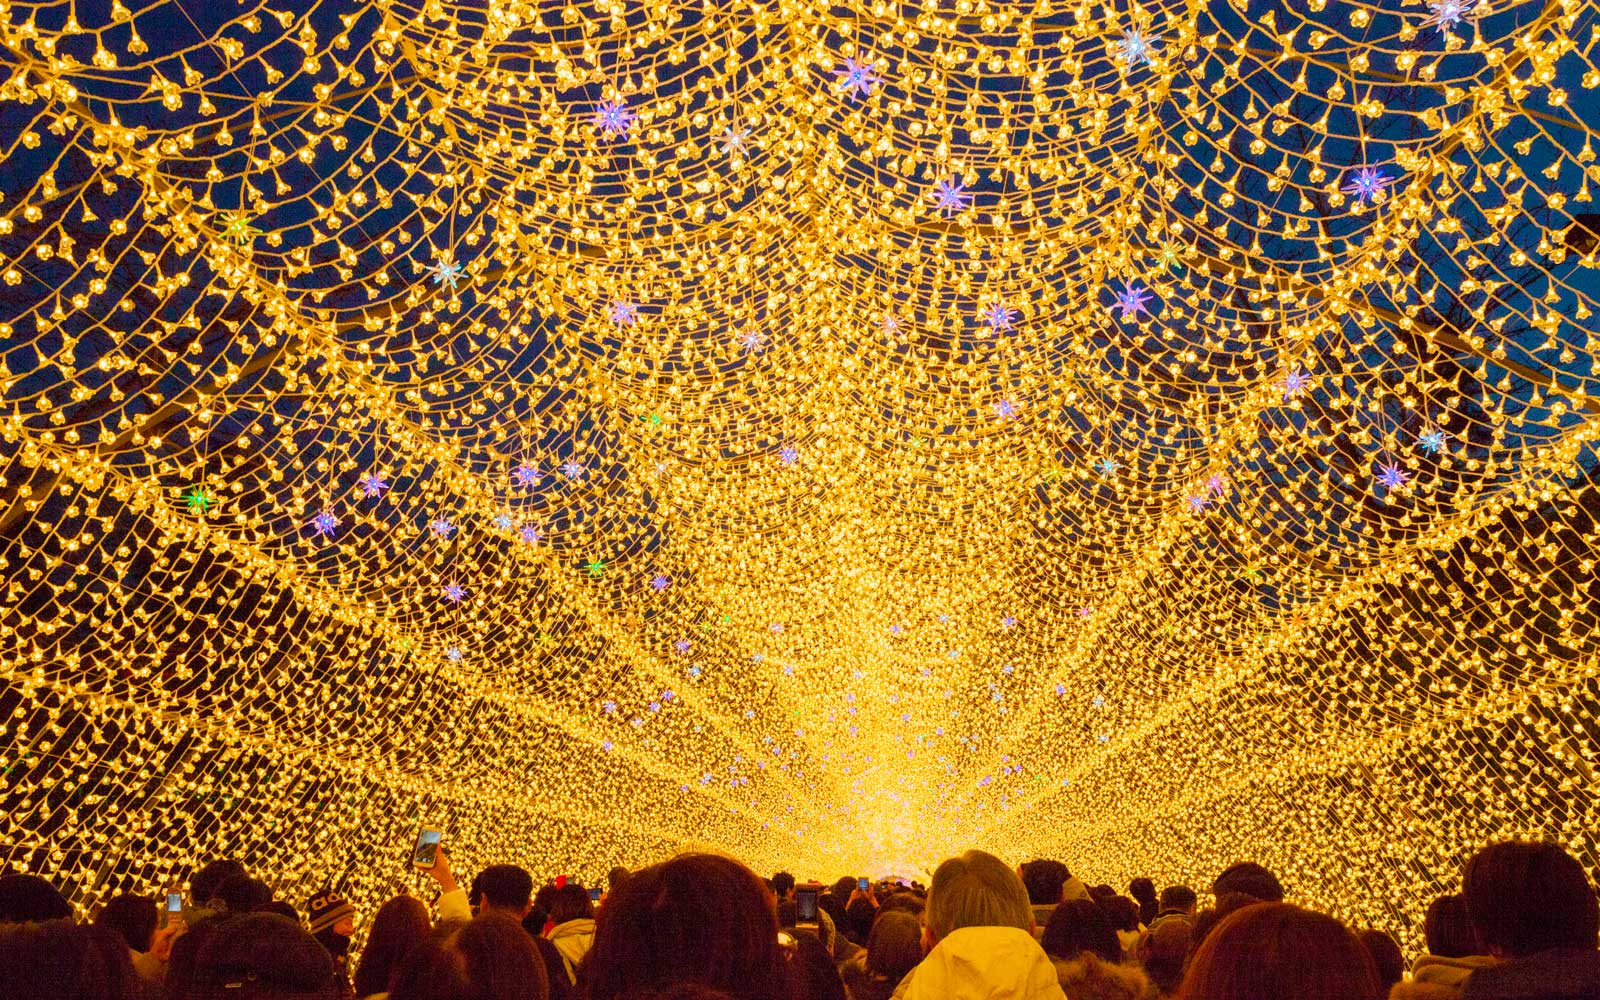 Japanese Light Festival Brings Fall Foliage to Life in the Dead of Winter